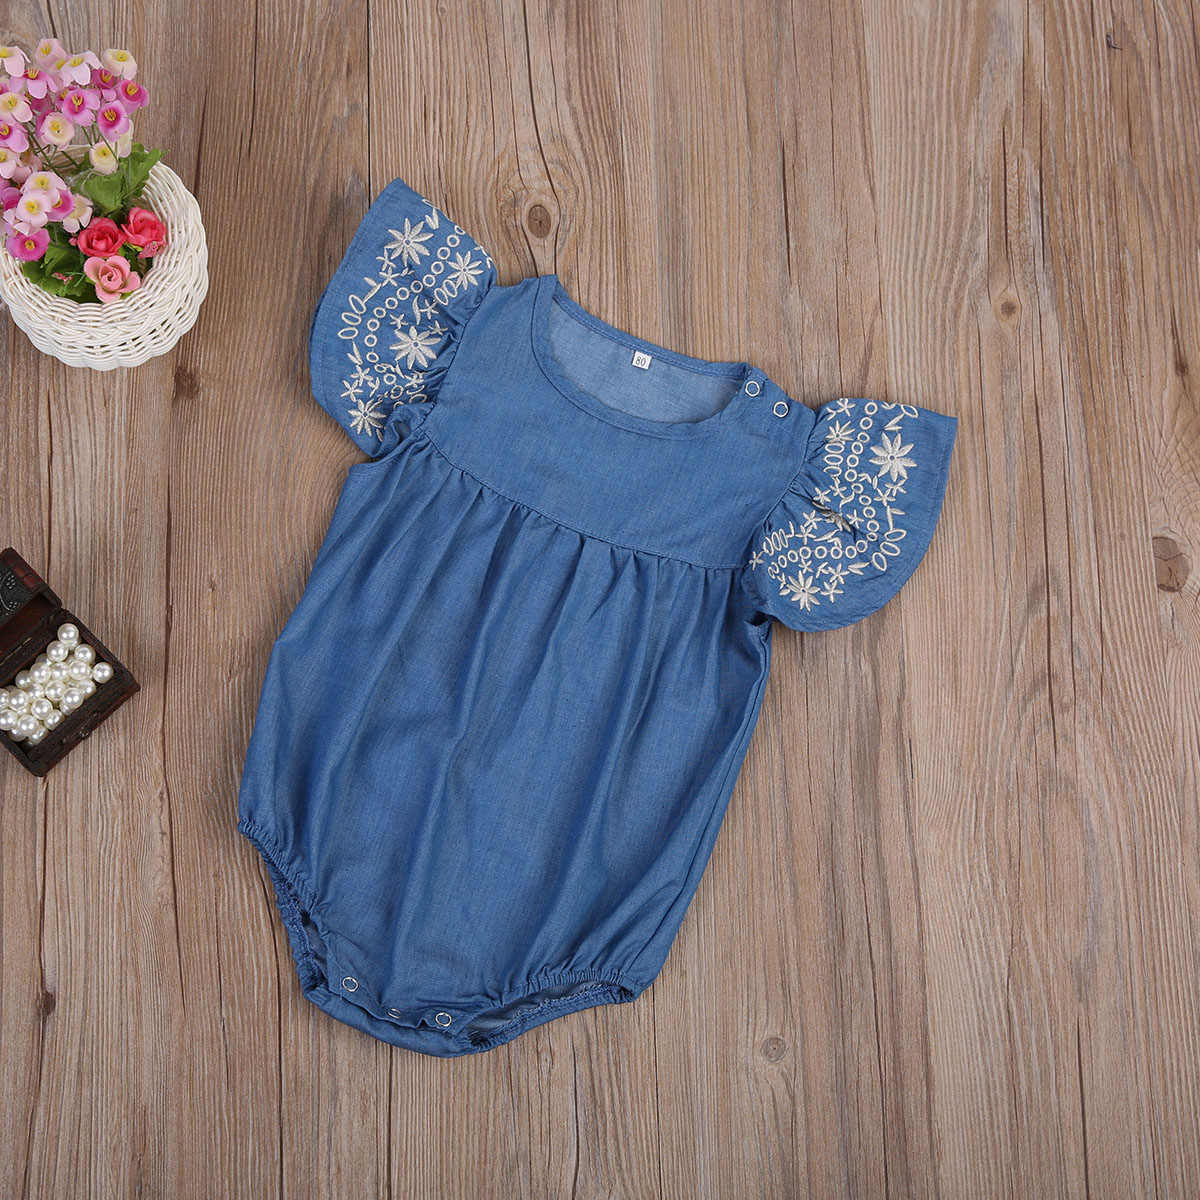 6c449e98752 ... Baby Girl Romper Denim Romper Ruffles Sleeves Solid Blue Newborn Baby  Rompers Toddler Kids Jumpsuit Outfits ...